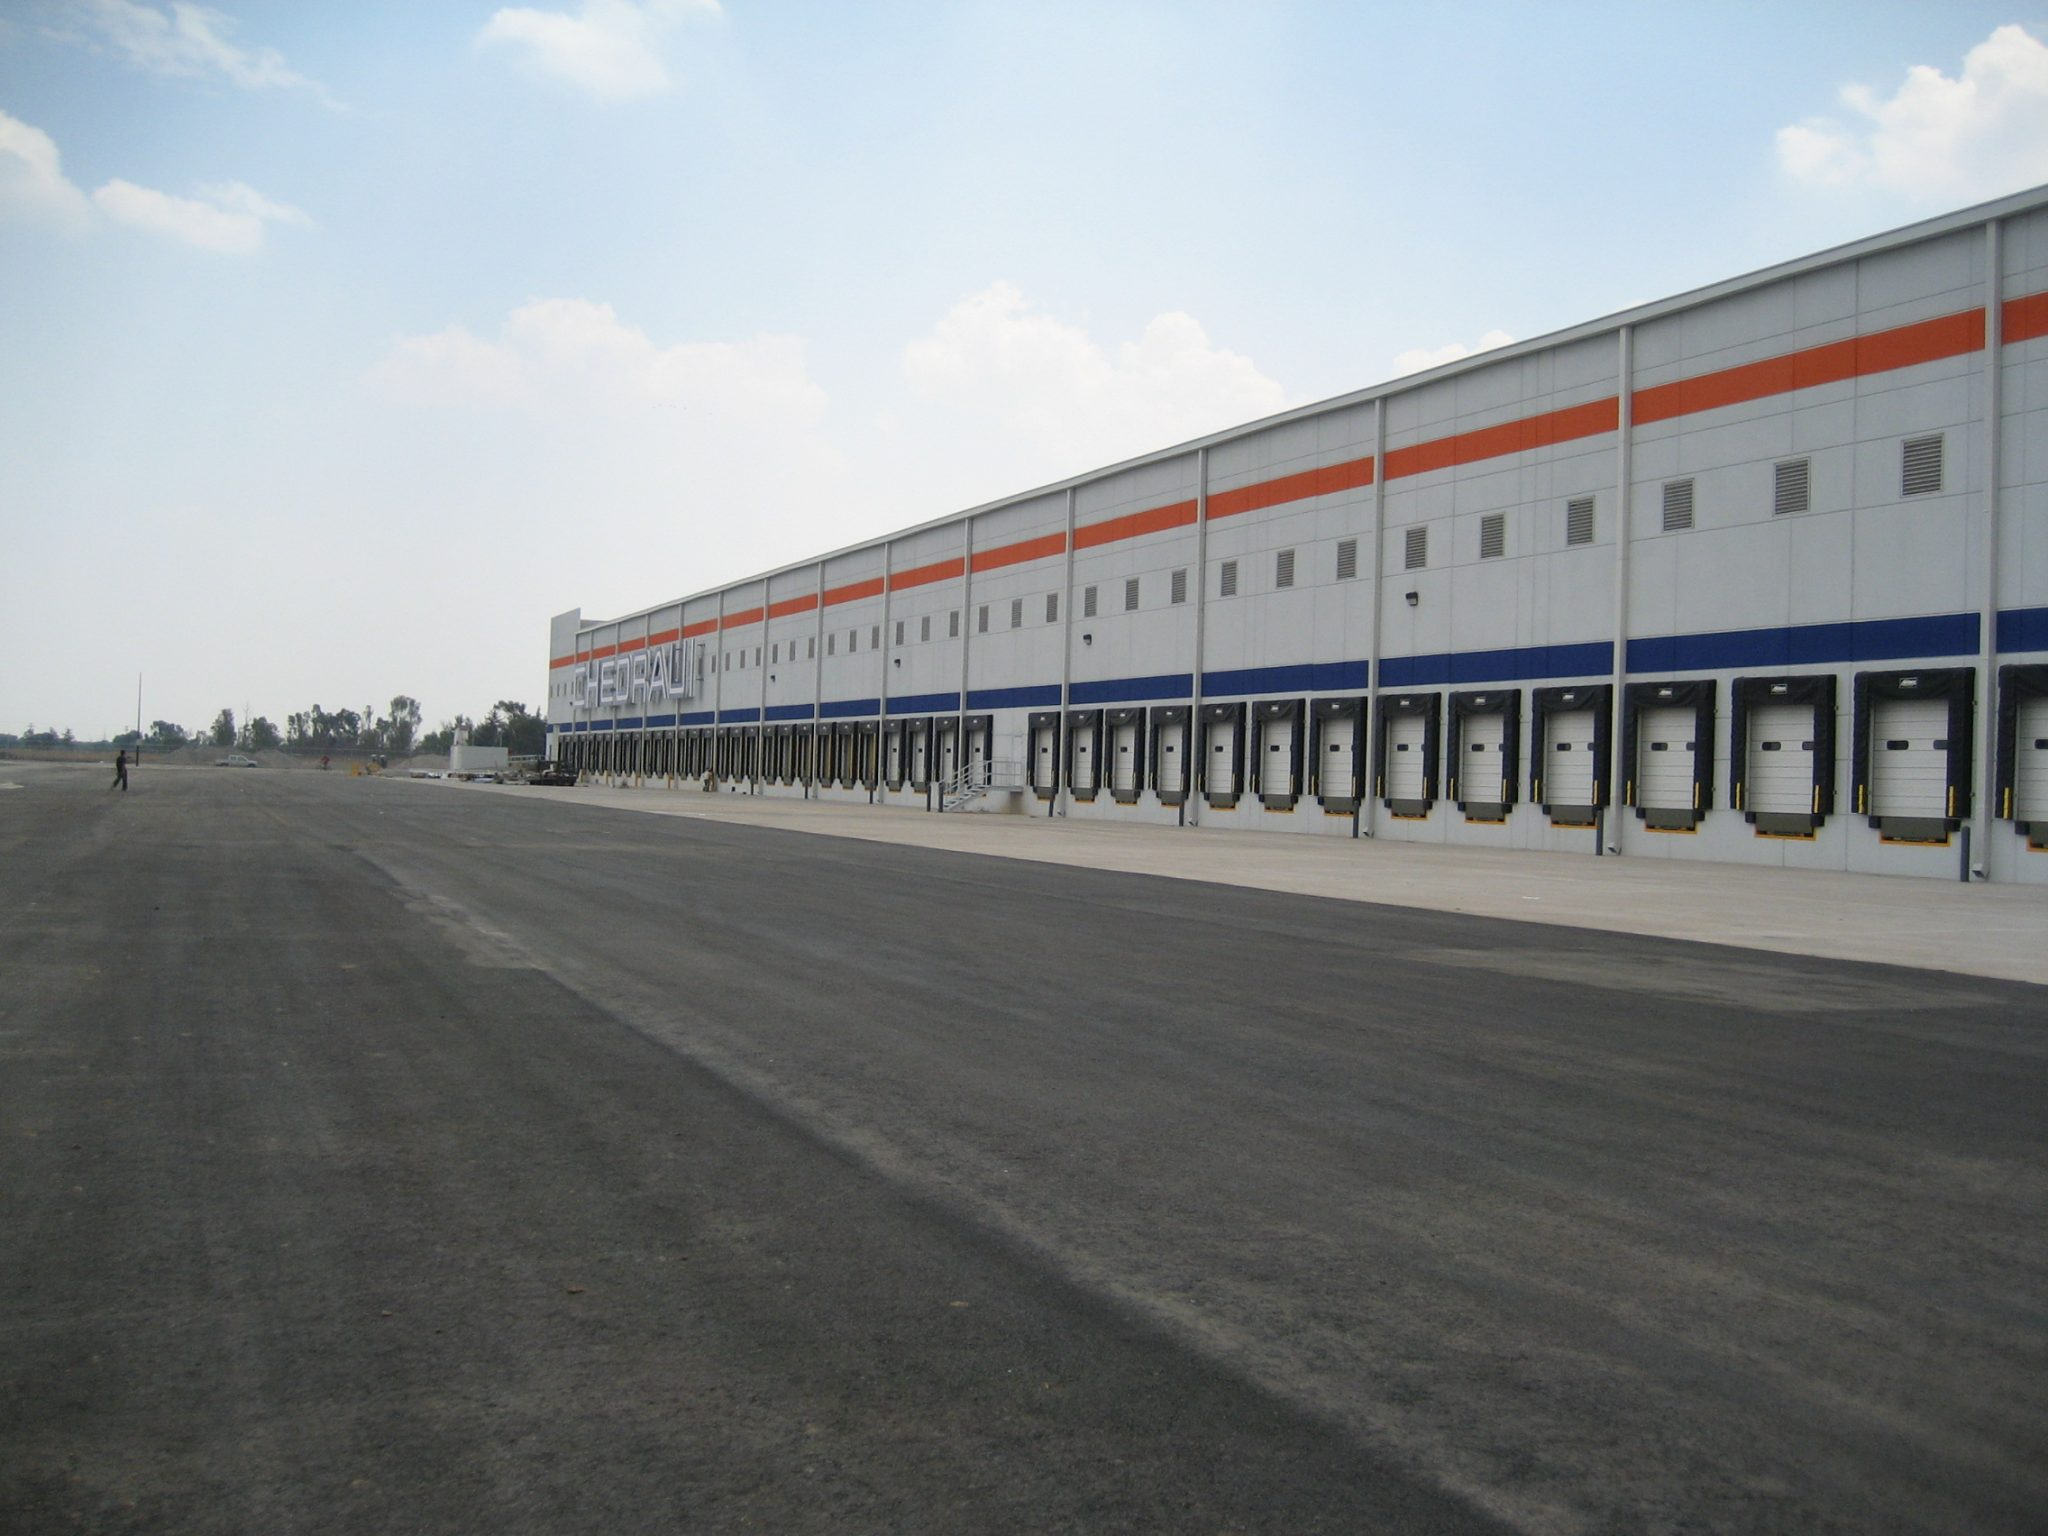 Eye level shot of Chedraui Distribution Center in Teoloyucan, Estado de Mexico